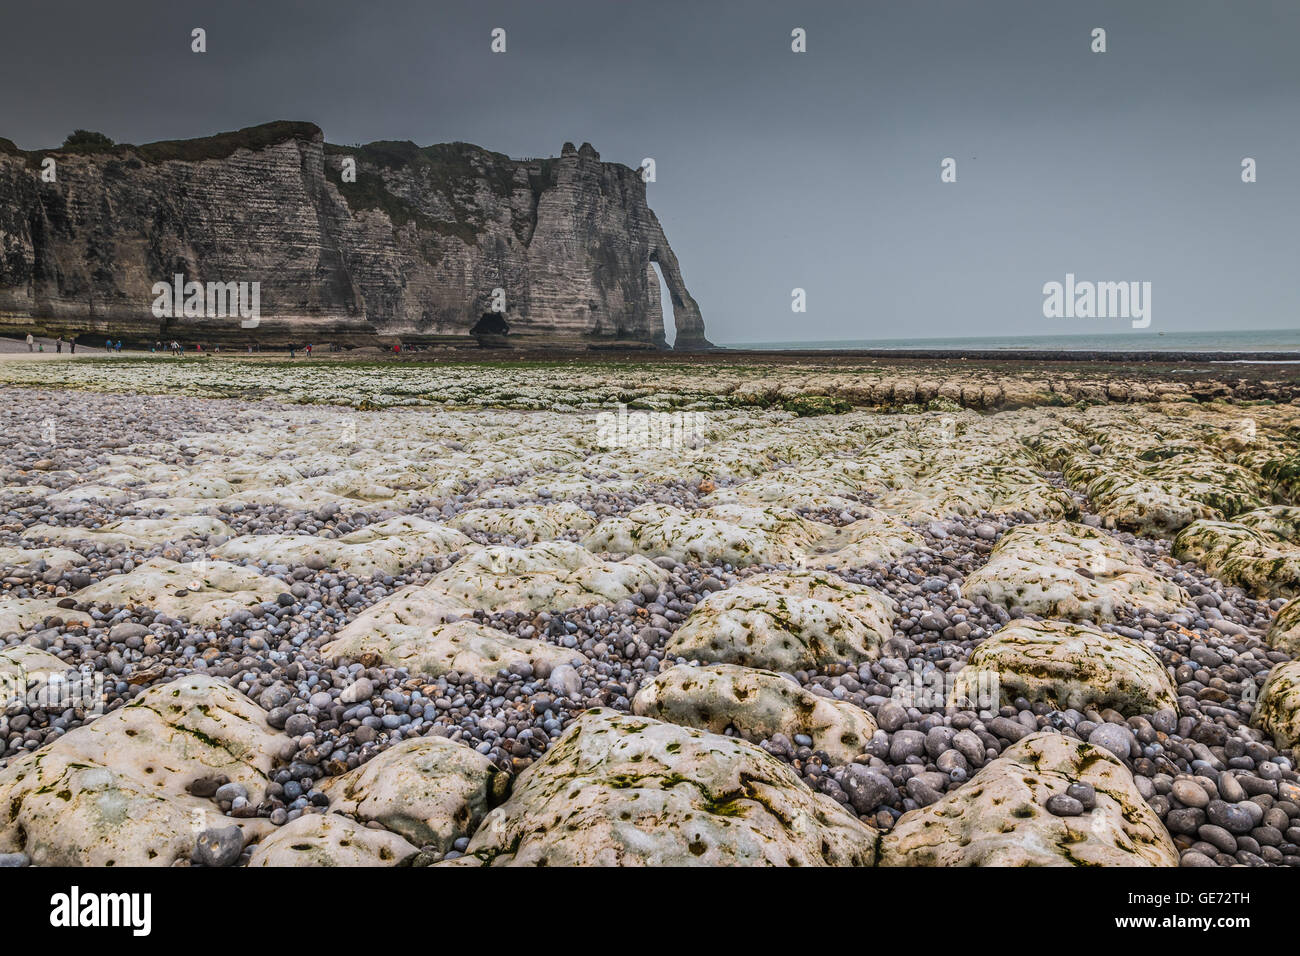 View of Etretat beach in France - Stock Image